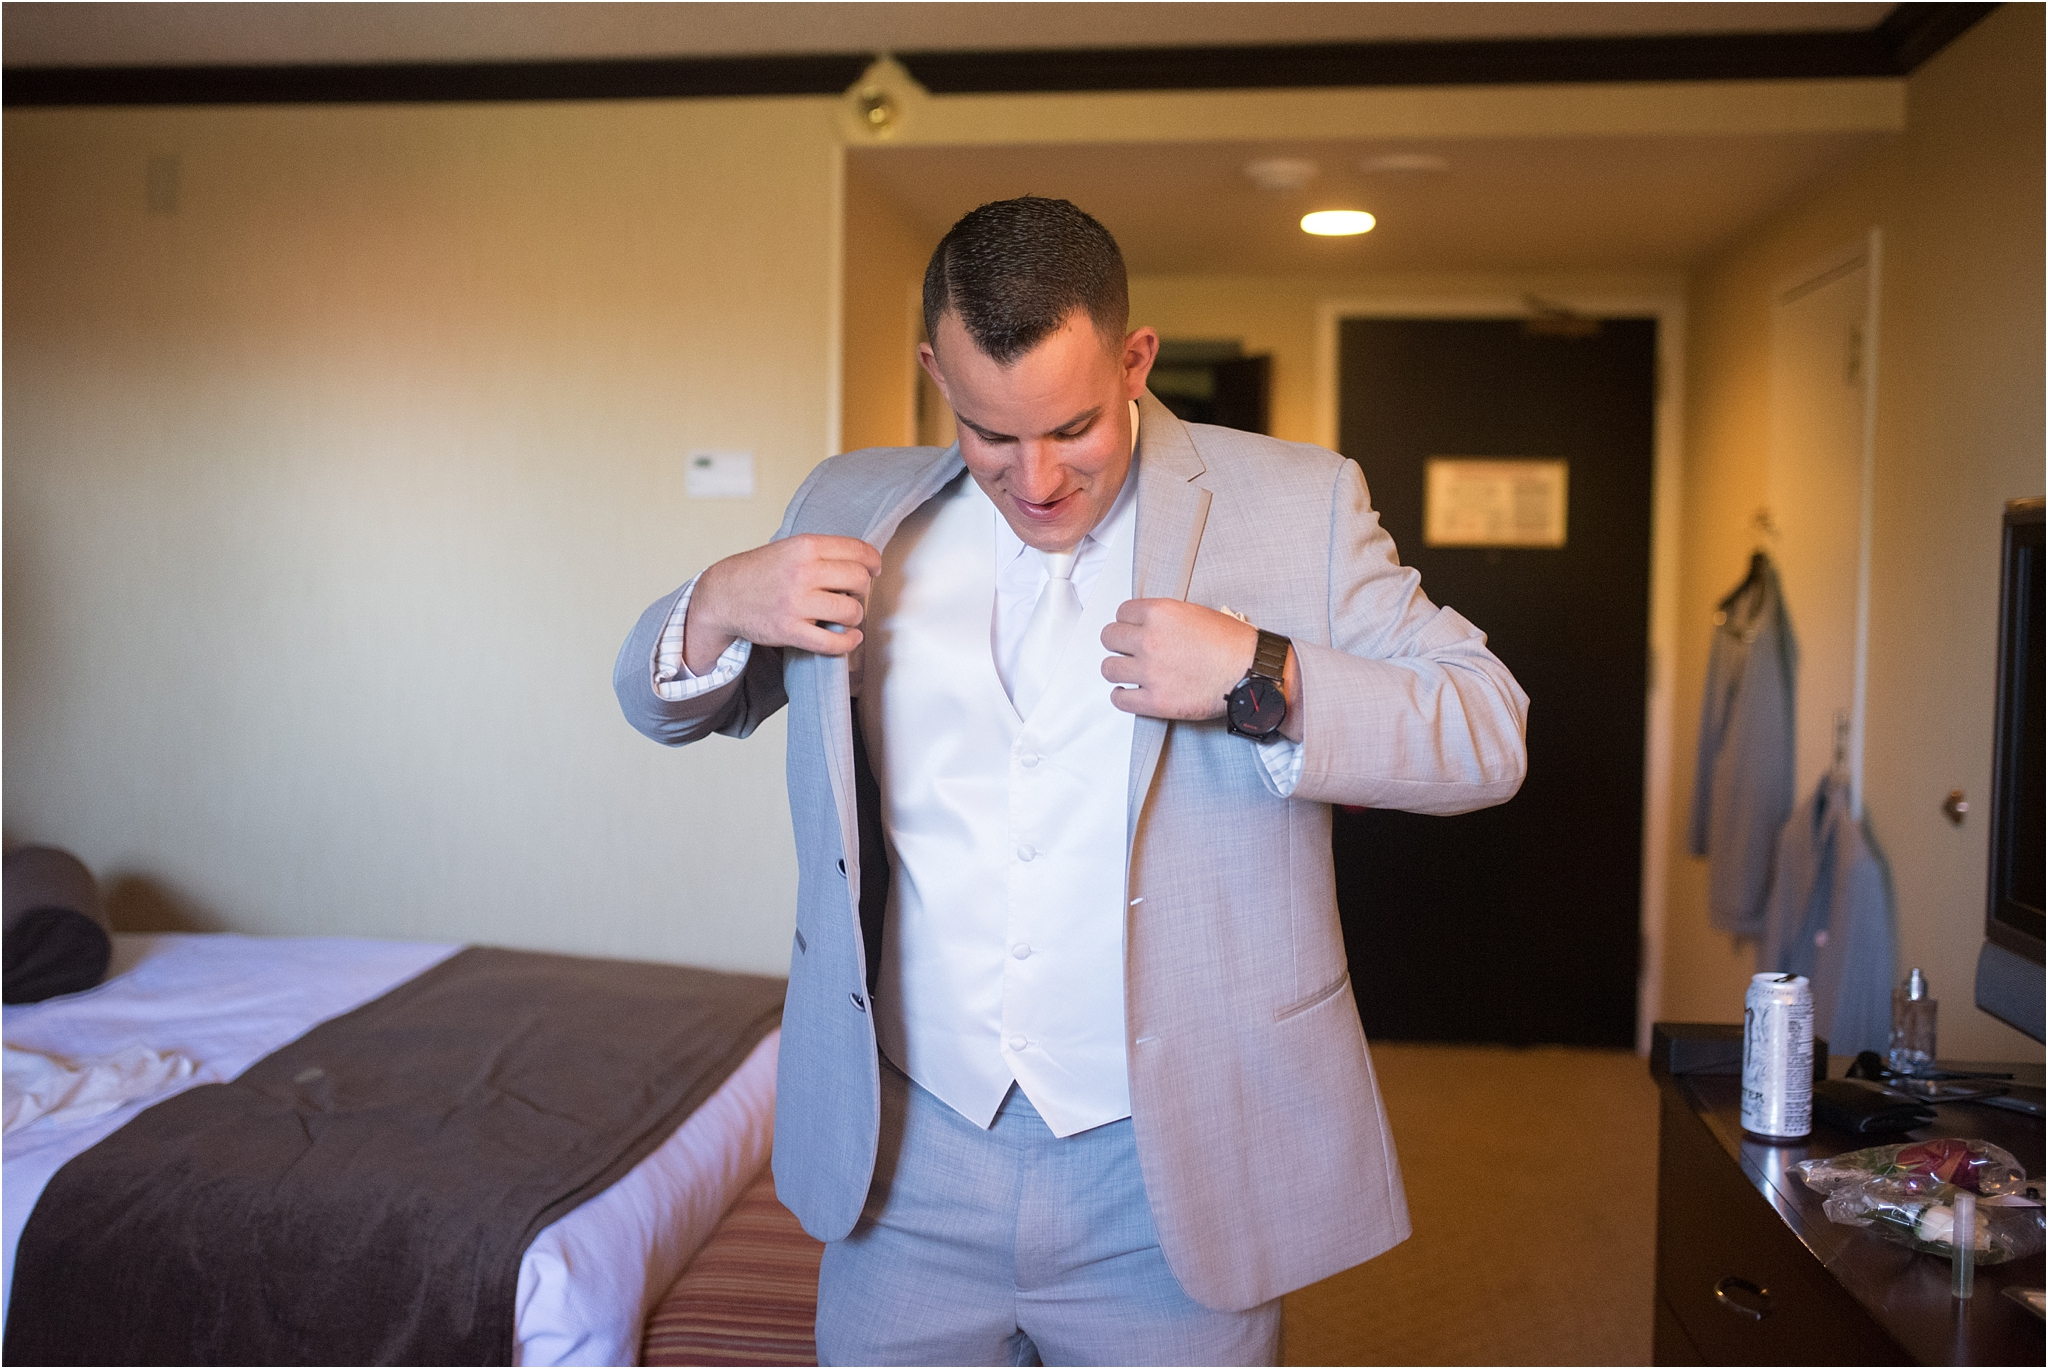 kayla kitts photography - albuquerque wedding photographer - hairpins and scissors - a cake odyssey - new mexico wedding photographer_0019.jpg